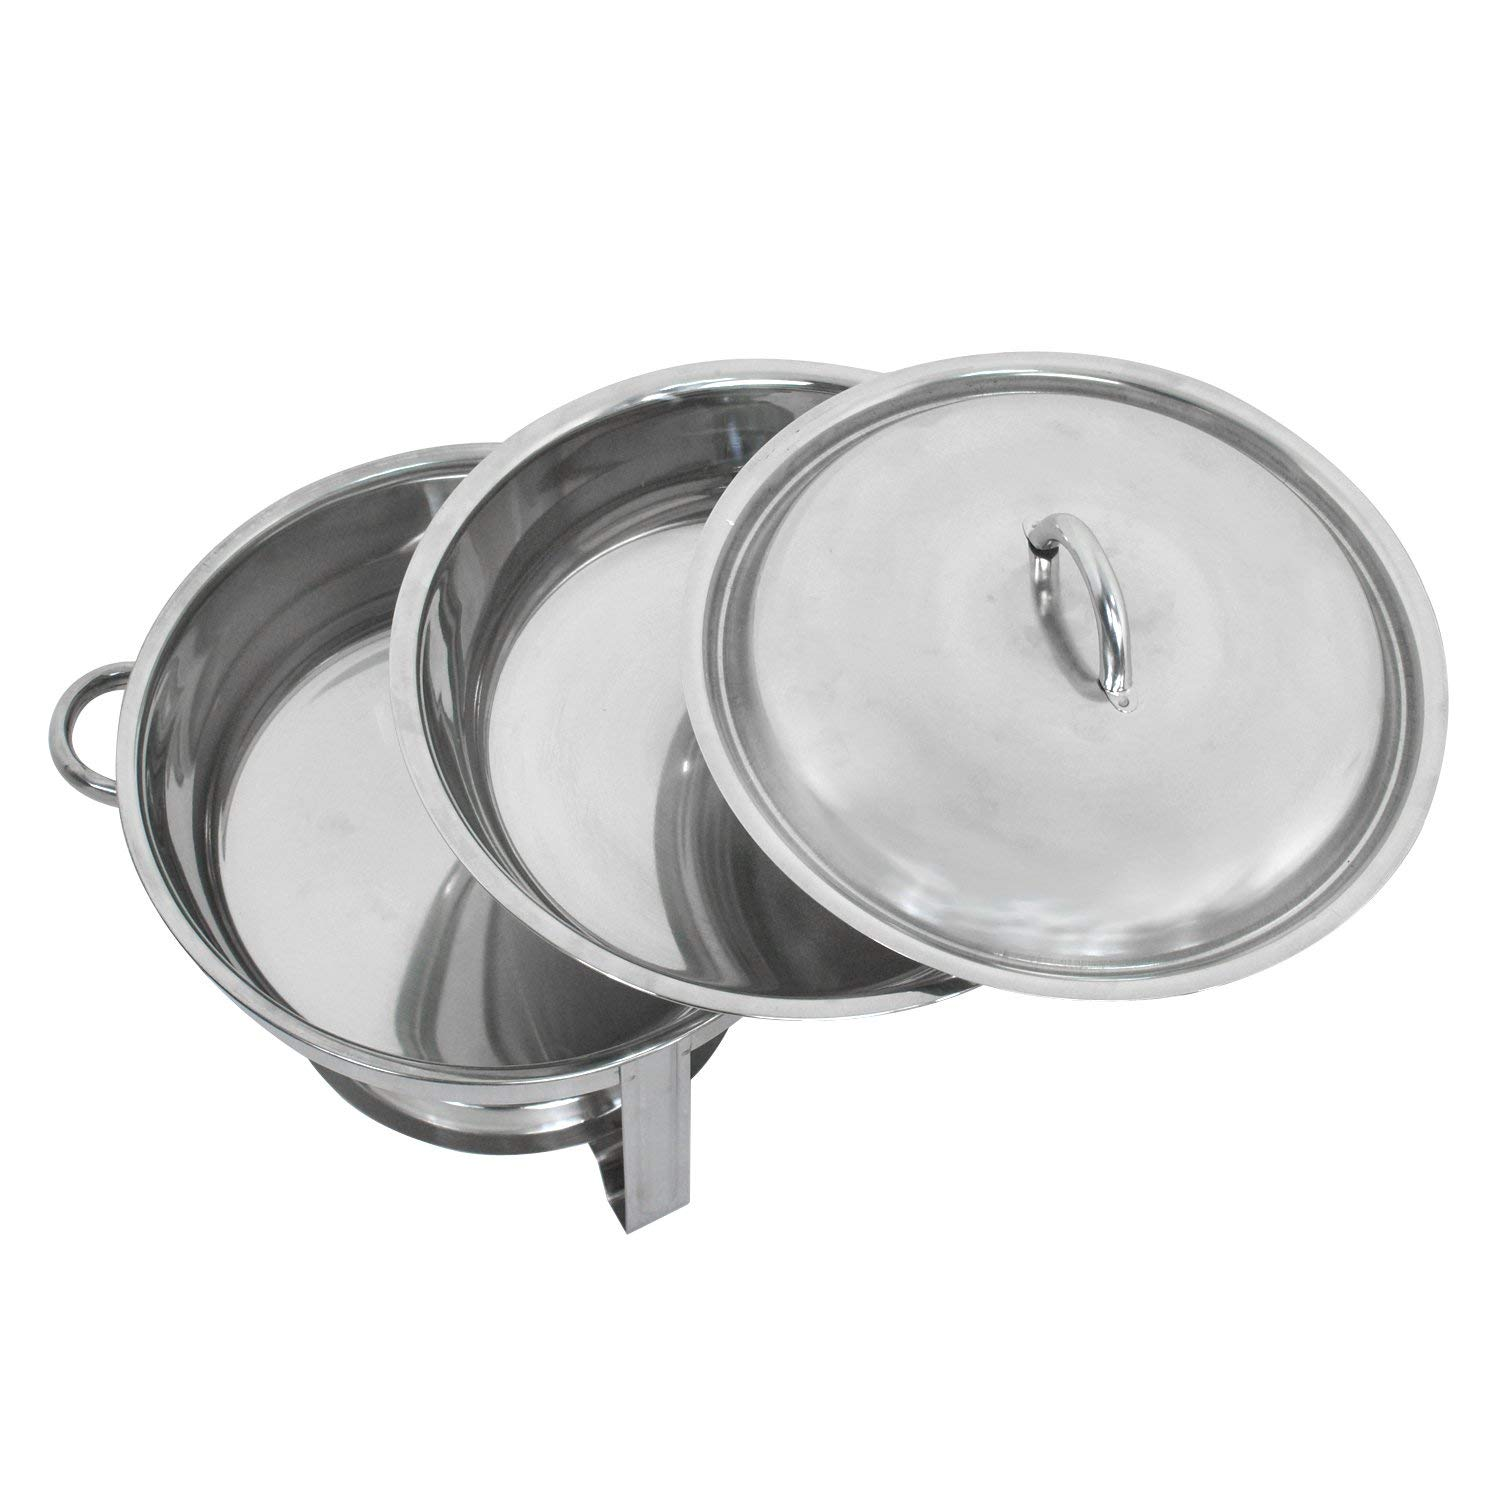 ZENY Pack of 3 Round Chafing Dish Full Size 5 Quart Stainless Steel Deep Pans Chafer Dish Set Buffet Catering Party Events Warmer Serving Set Utensils w/Fuel Holder